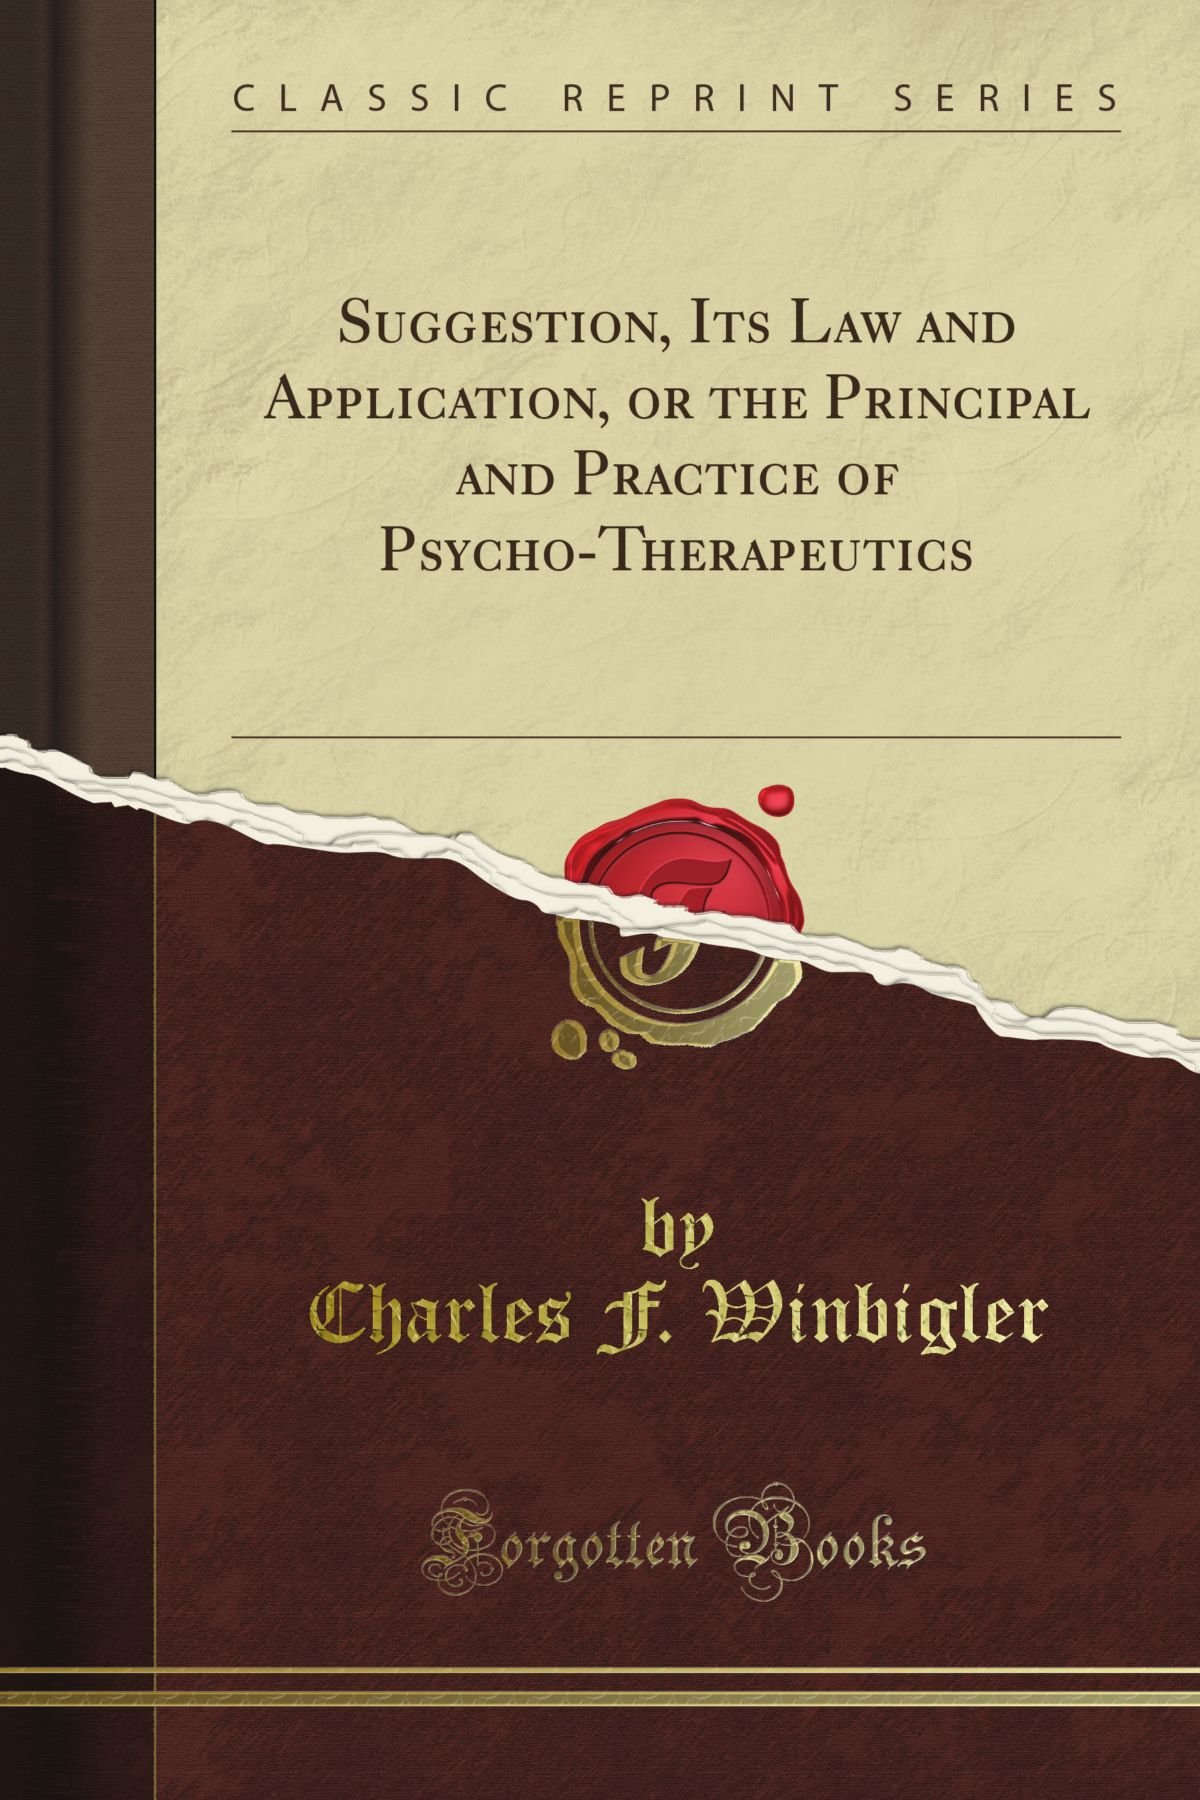 Download Suggestion, Its Law and Application, or the Principal and Practice of Psycho-Therapeutics (Classic Reprint) ebook